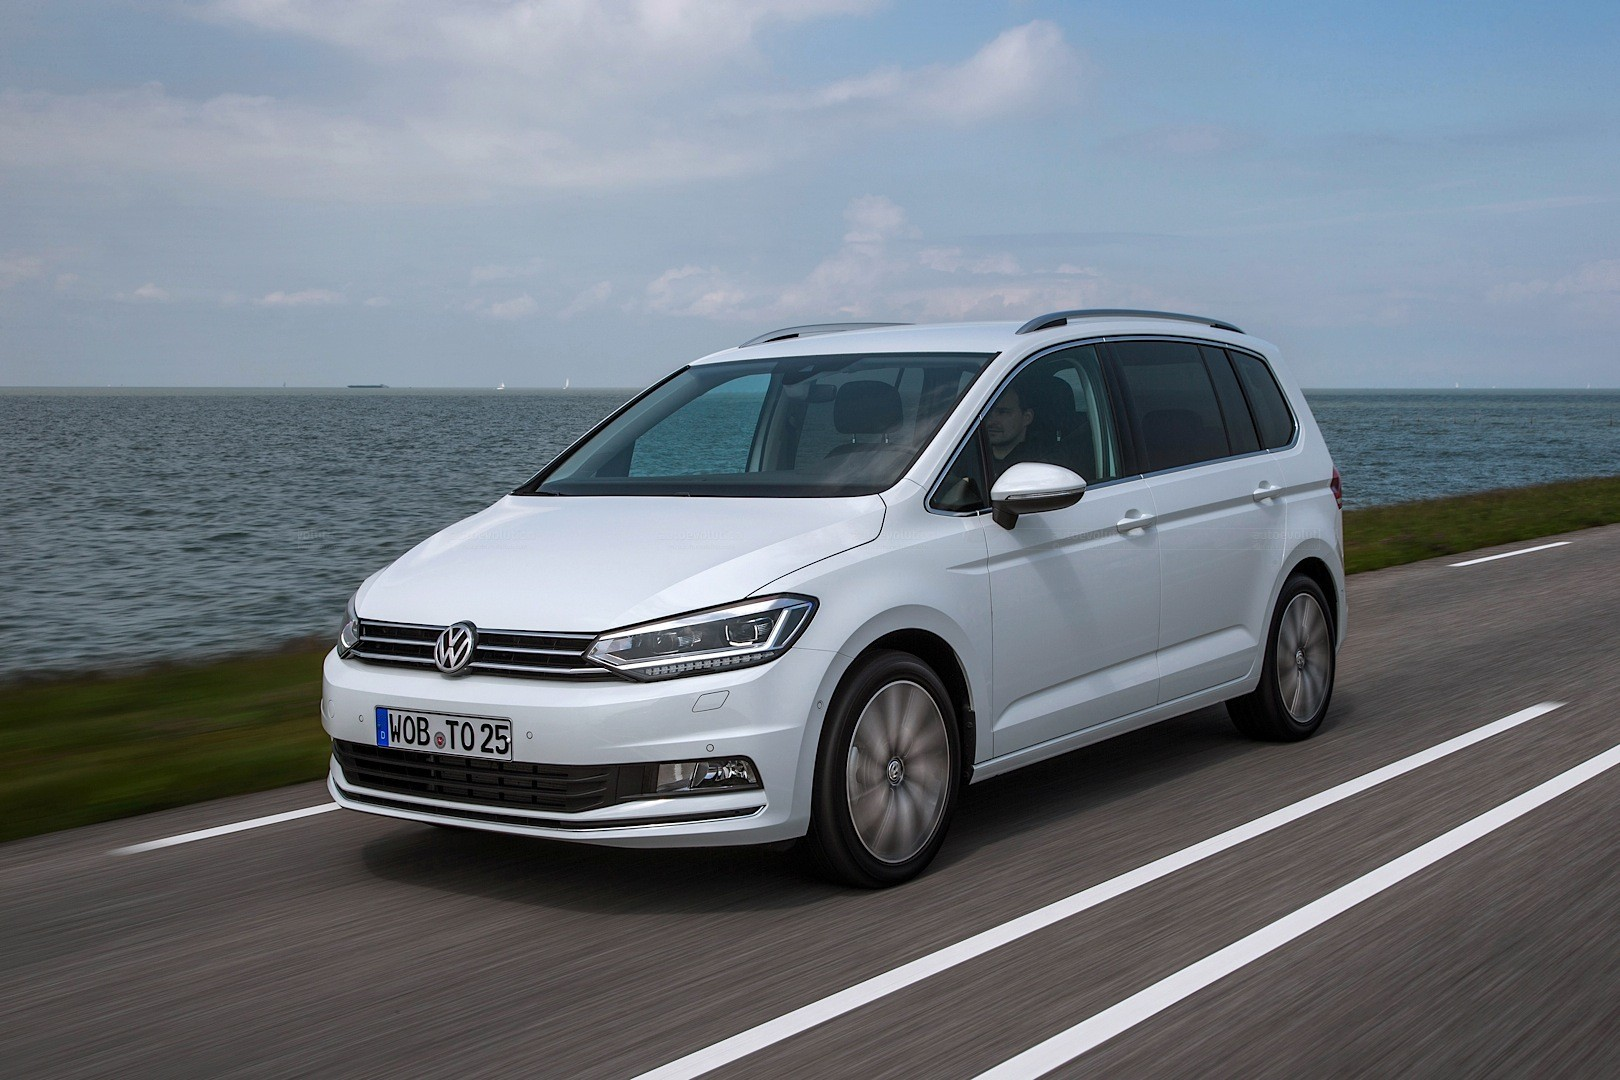 Right Choice Auto >> 2016 Volkswagen Touran R-Line Package Launched in Germany - autoevolution